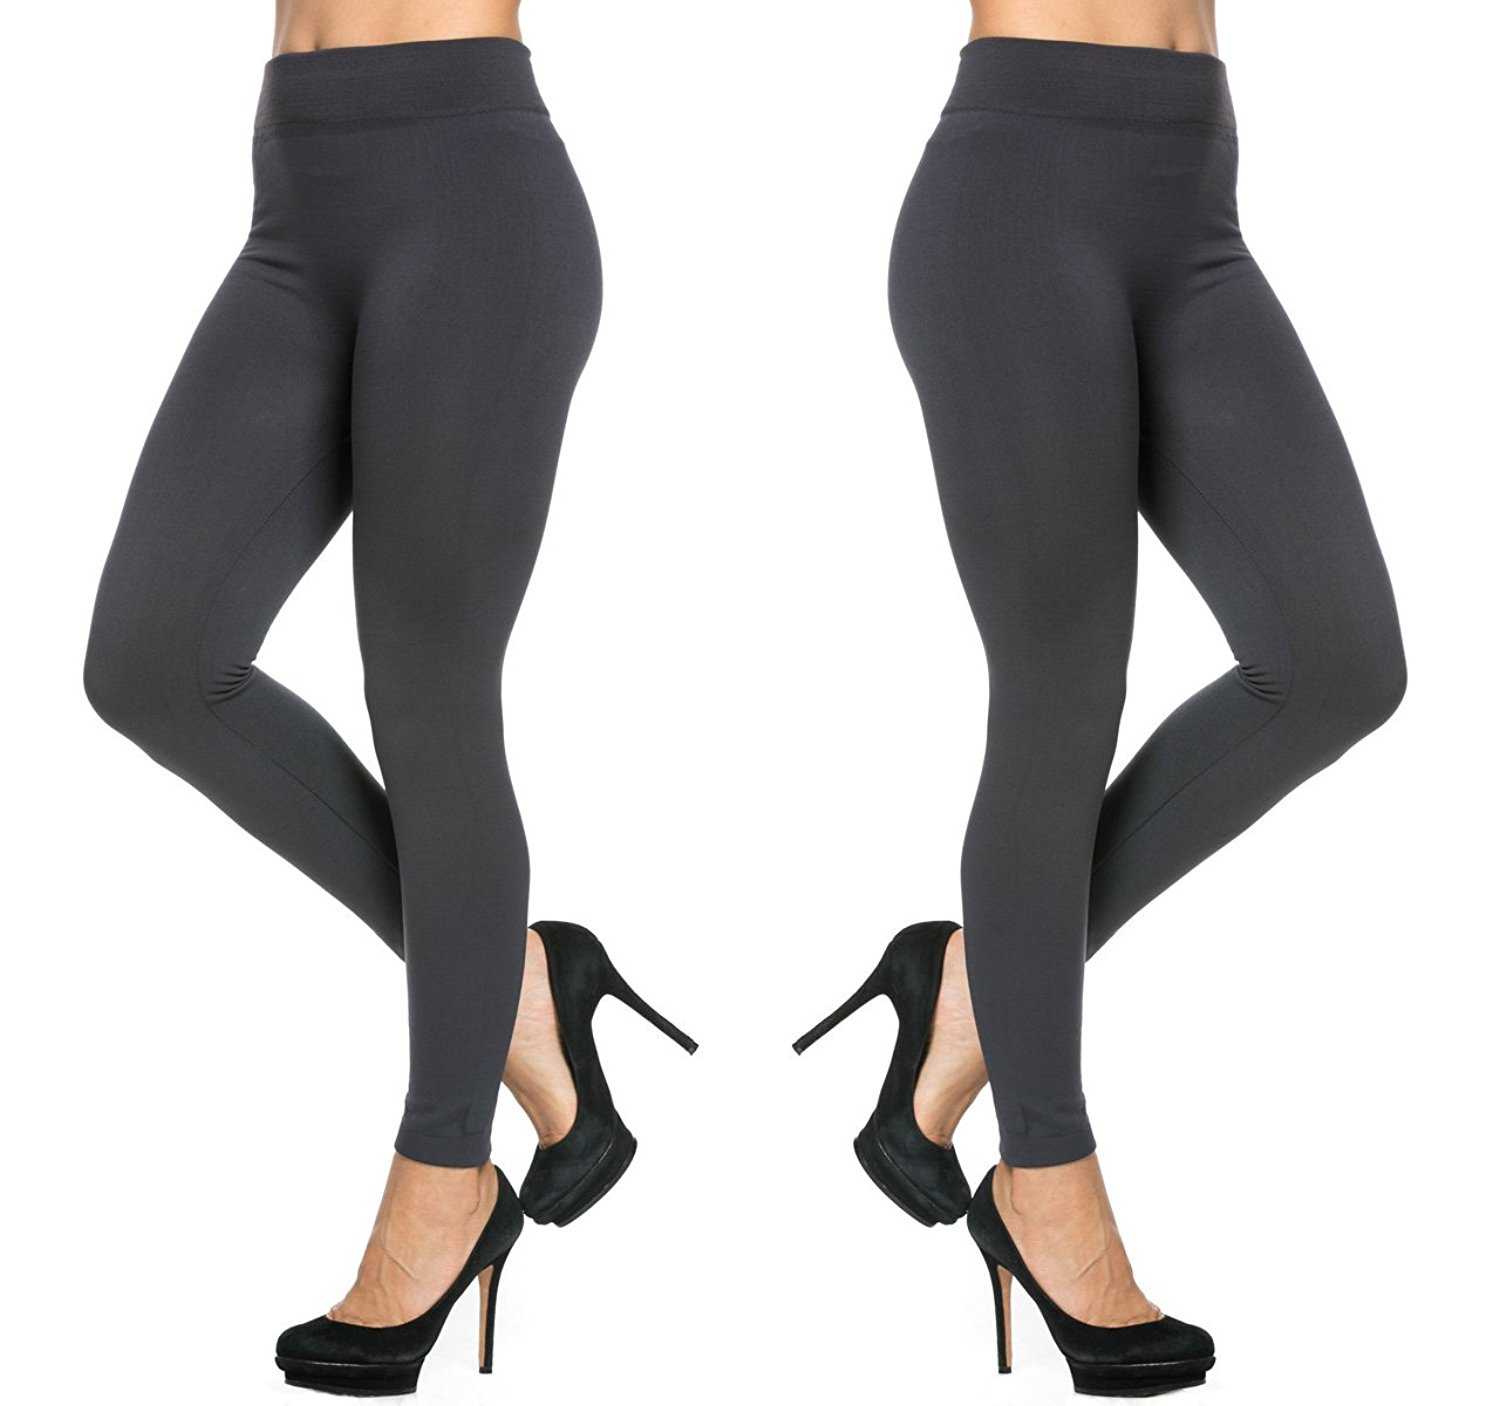 f24b3d5c069a0 2 Pack of Women's Fleece Lined Brushed Thermal Leggings Cold Winter Thick  Black Tight Pants